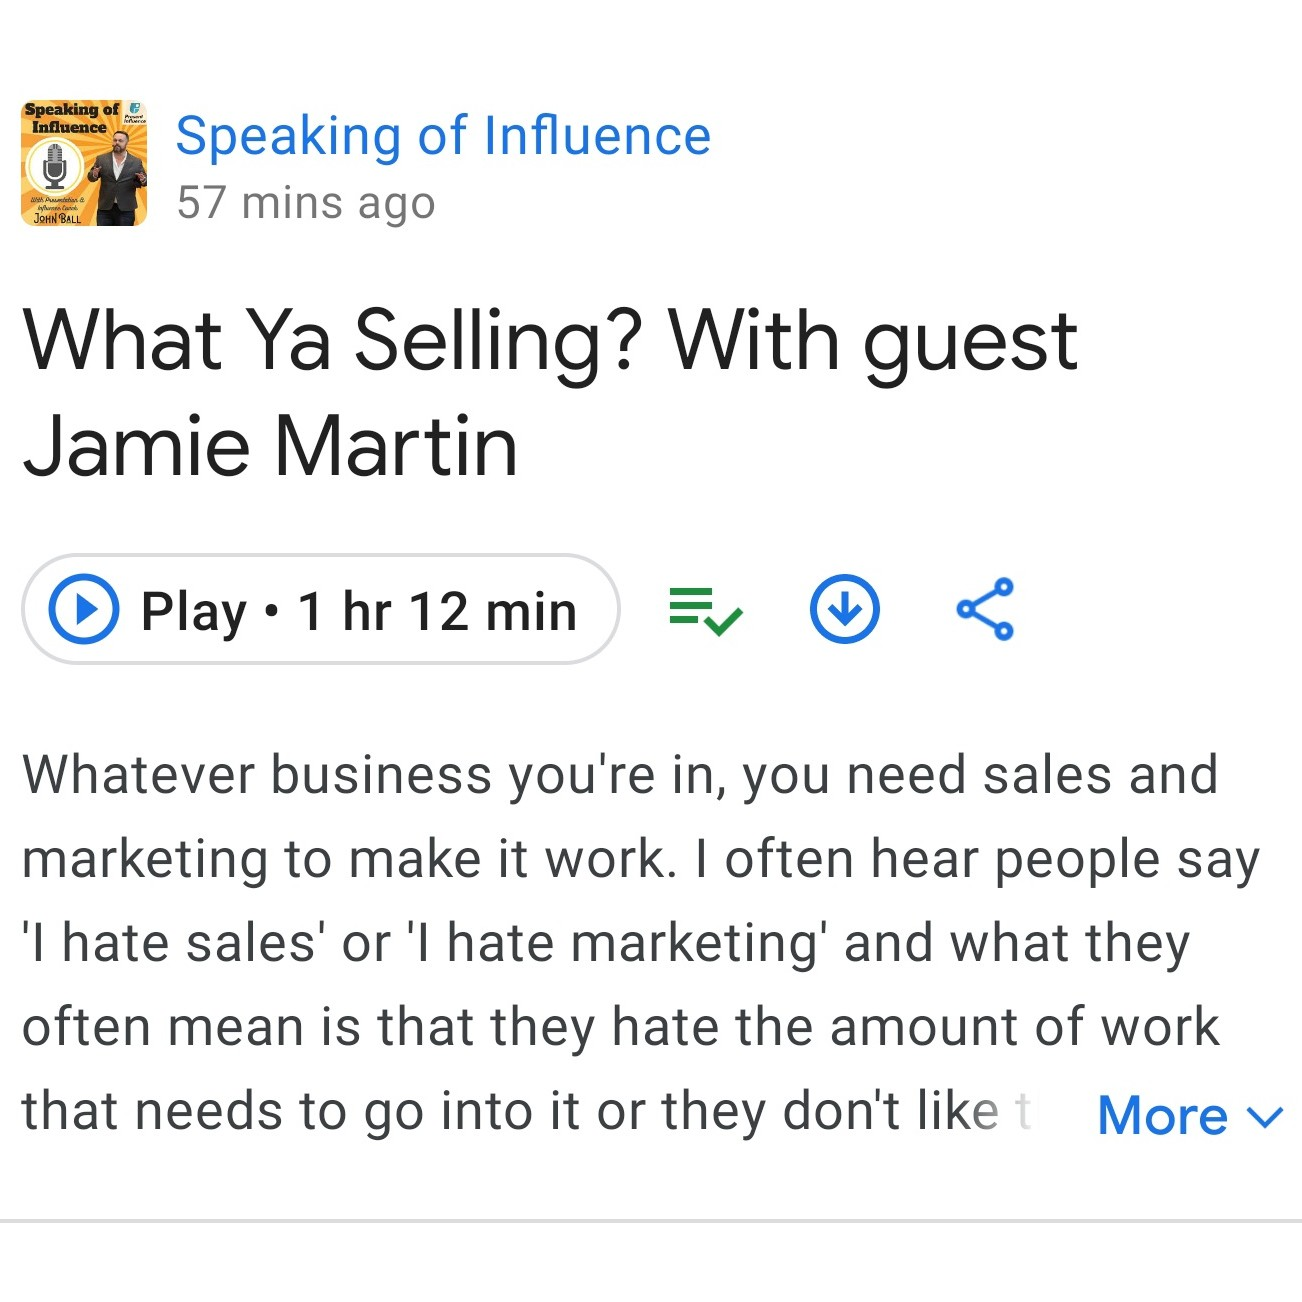 Speaking of Influence - Podcast Guest